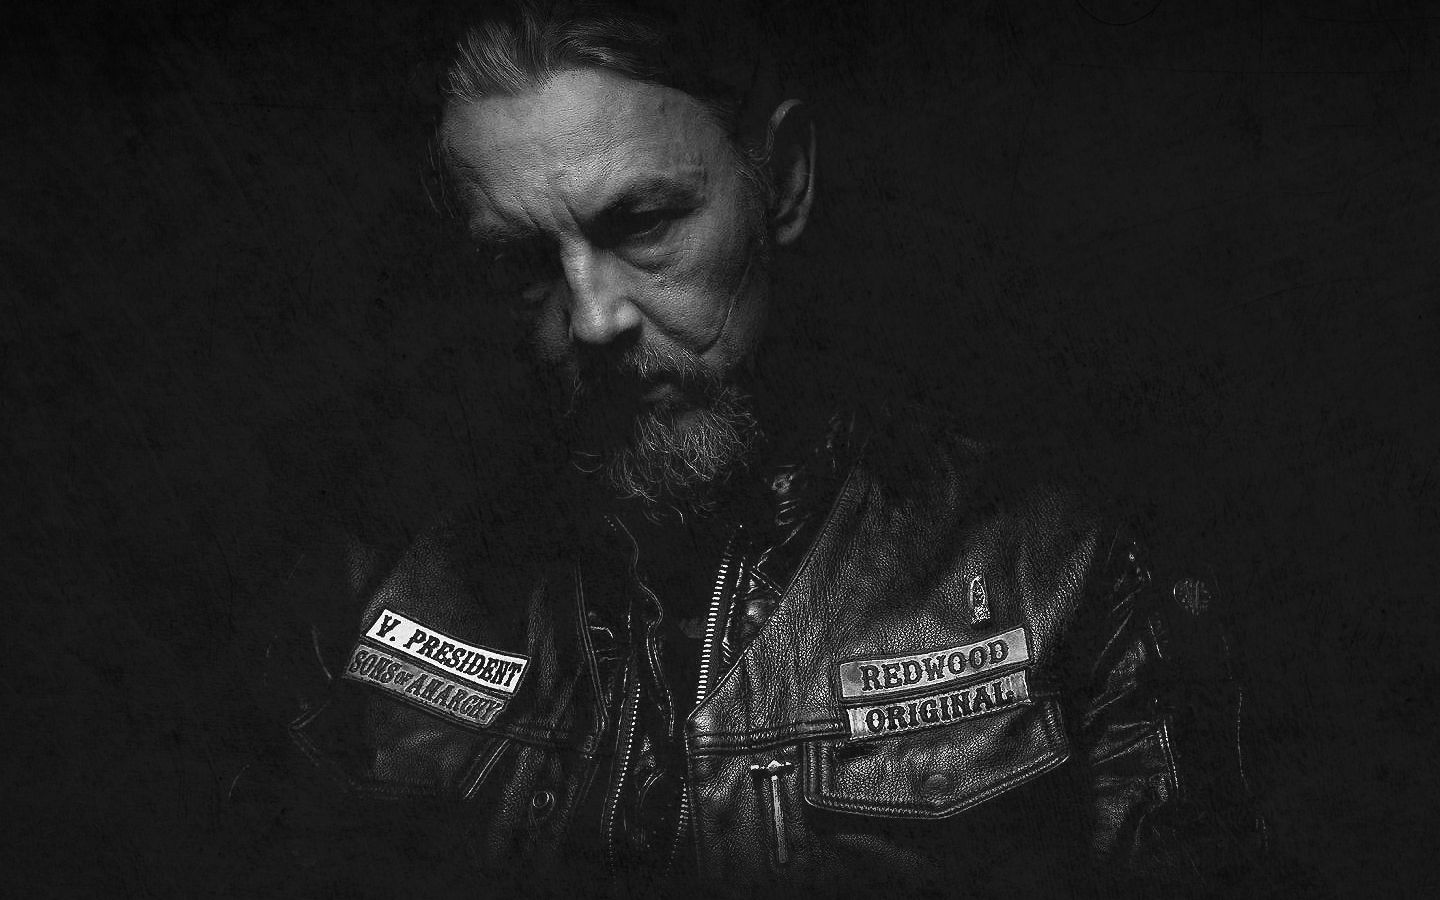 Sons Of Anarchy Wallpaper Soa Wallpaper Chibs Sons Of Anarchy Soa Tommy Flanagan